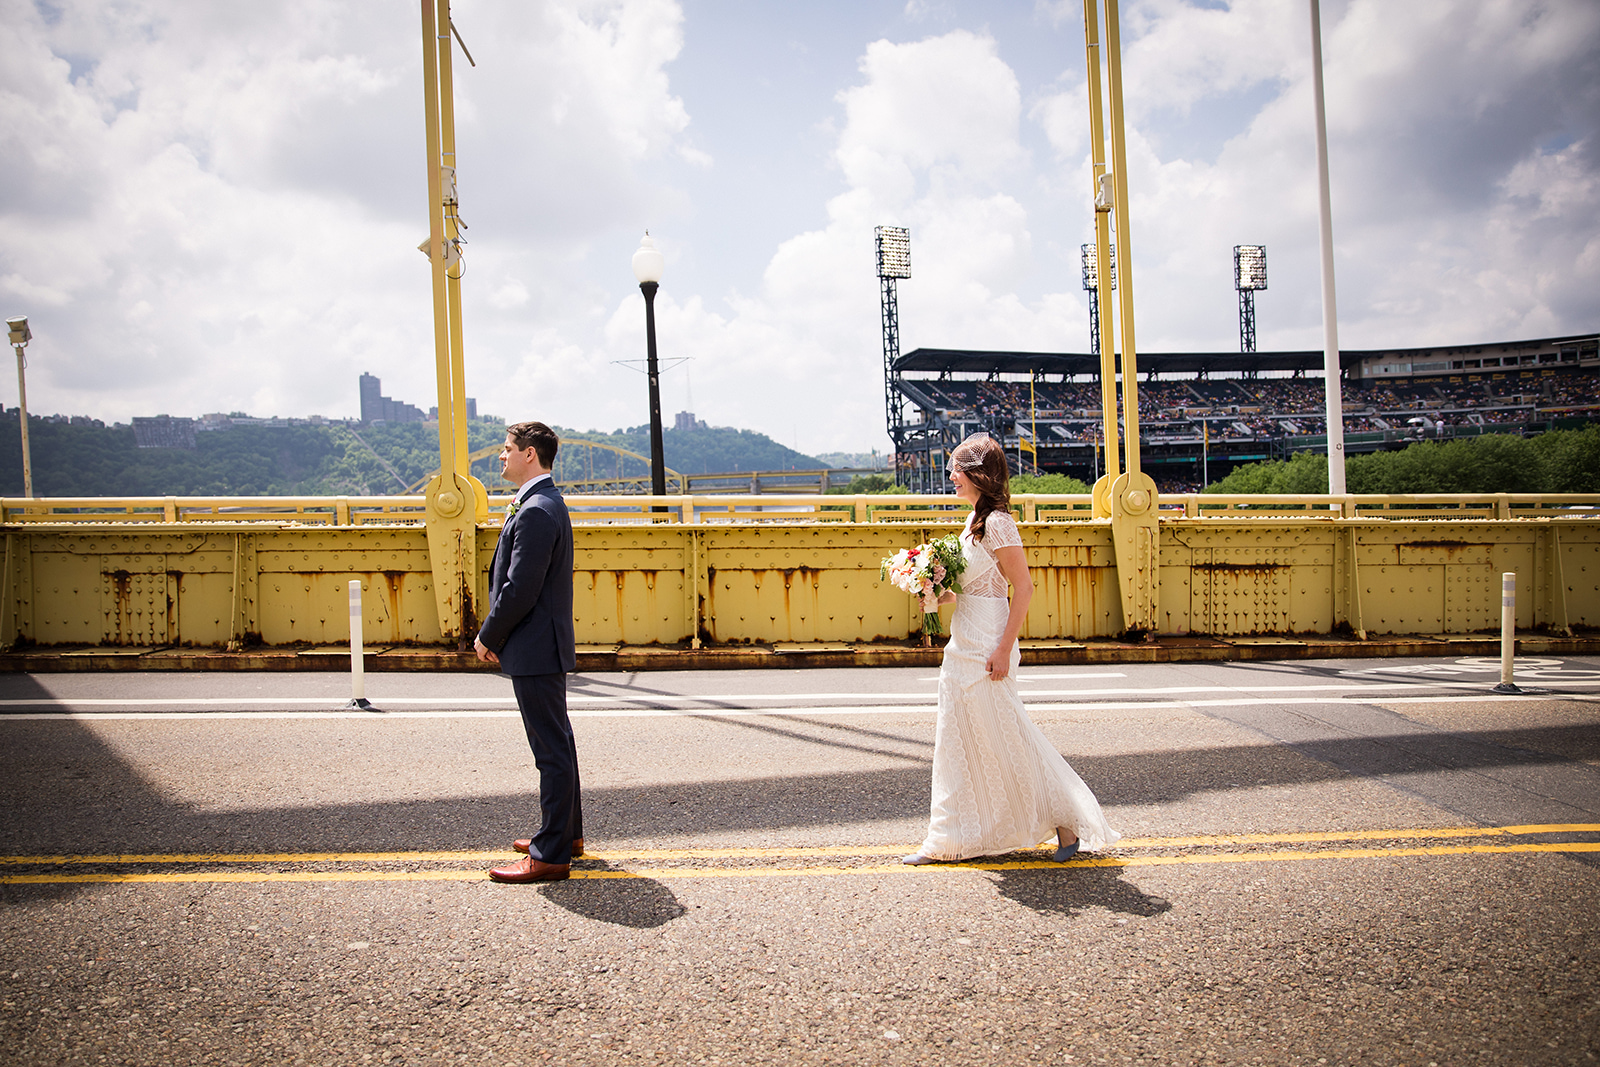 Bride and groom's first look for their school-themed vintage wedding at Ace Hotel in Pittsburgh. See more fun details at exhale-events.com